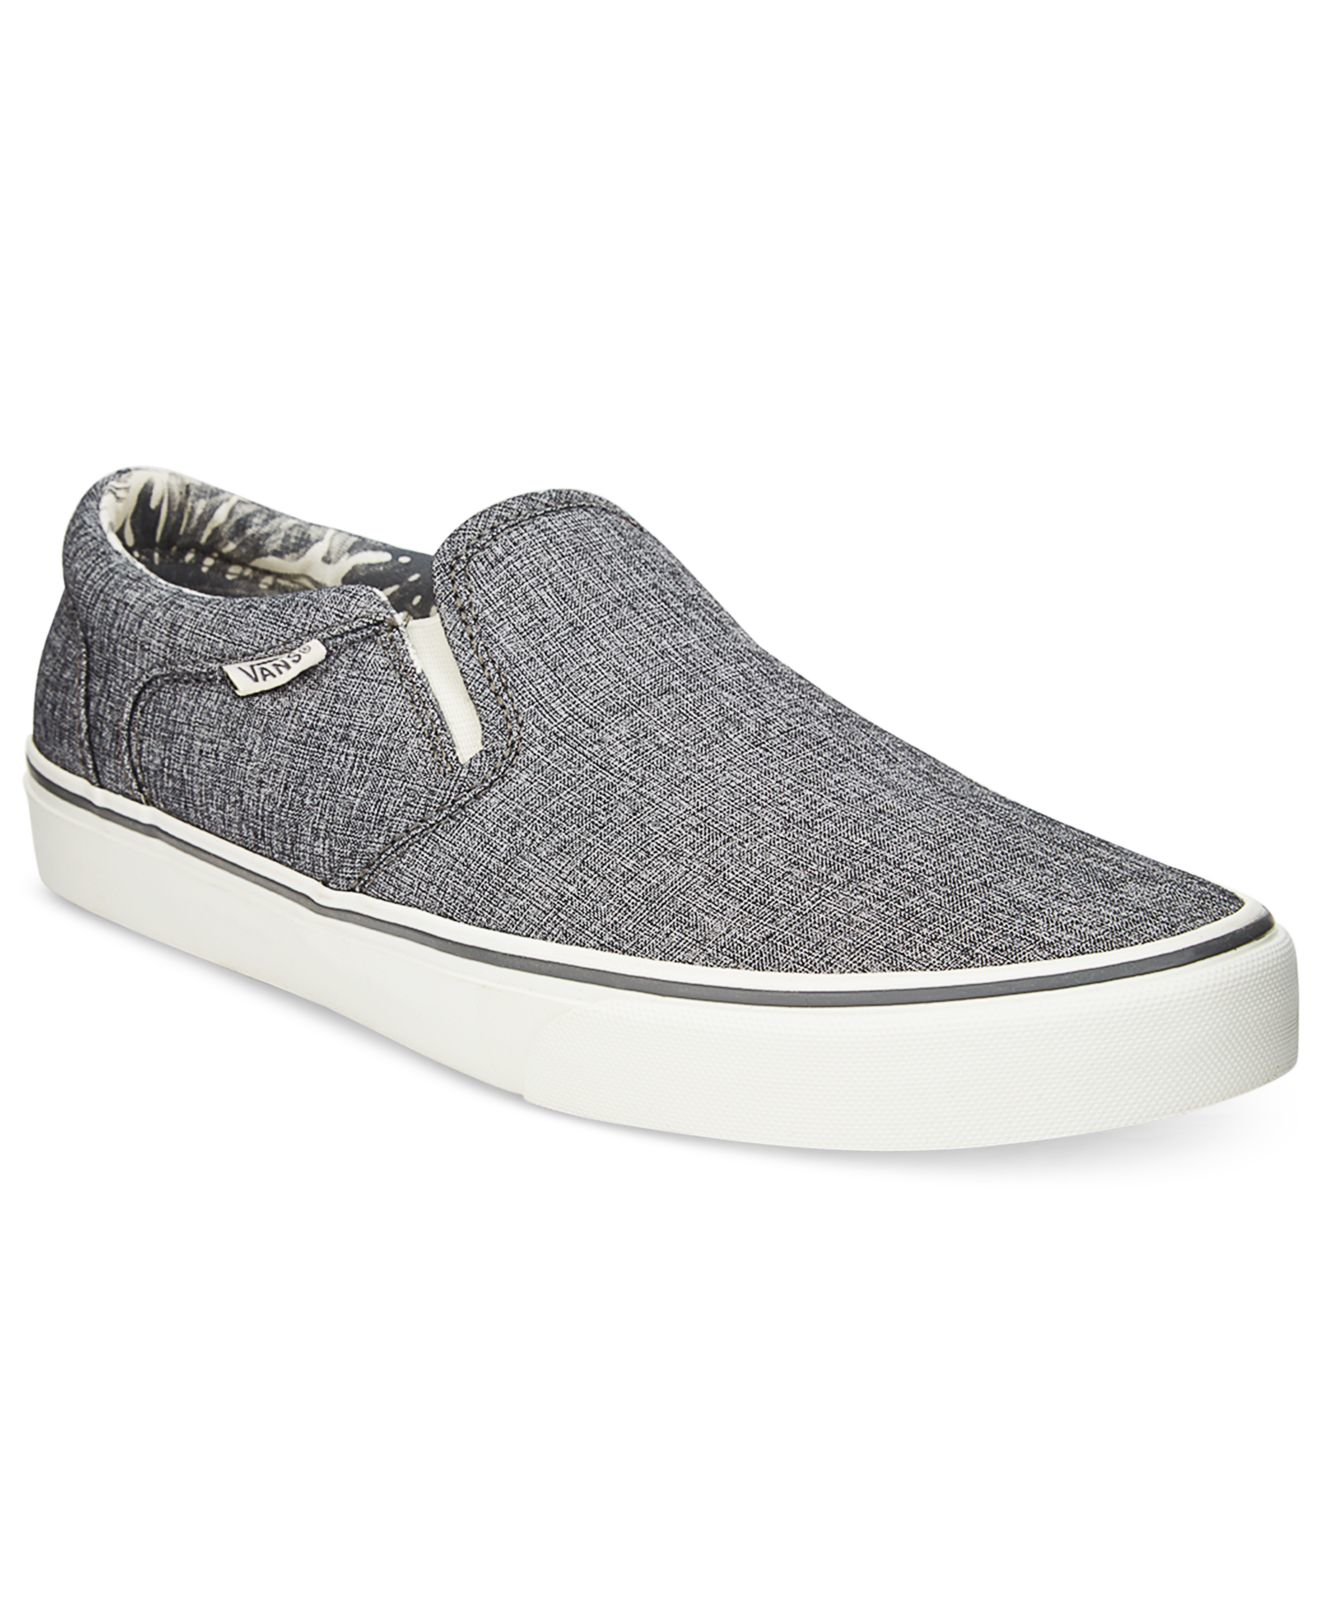 Black Canvas Shoes Sale: Save Up to 50% Off! Shop dexterminduwi.ga's huge selection of Black Canvas Shoes - Over styles available. FREE Shipping & Exchanges, and a % price guarantee!